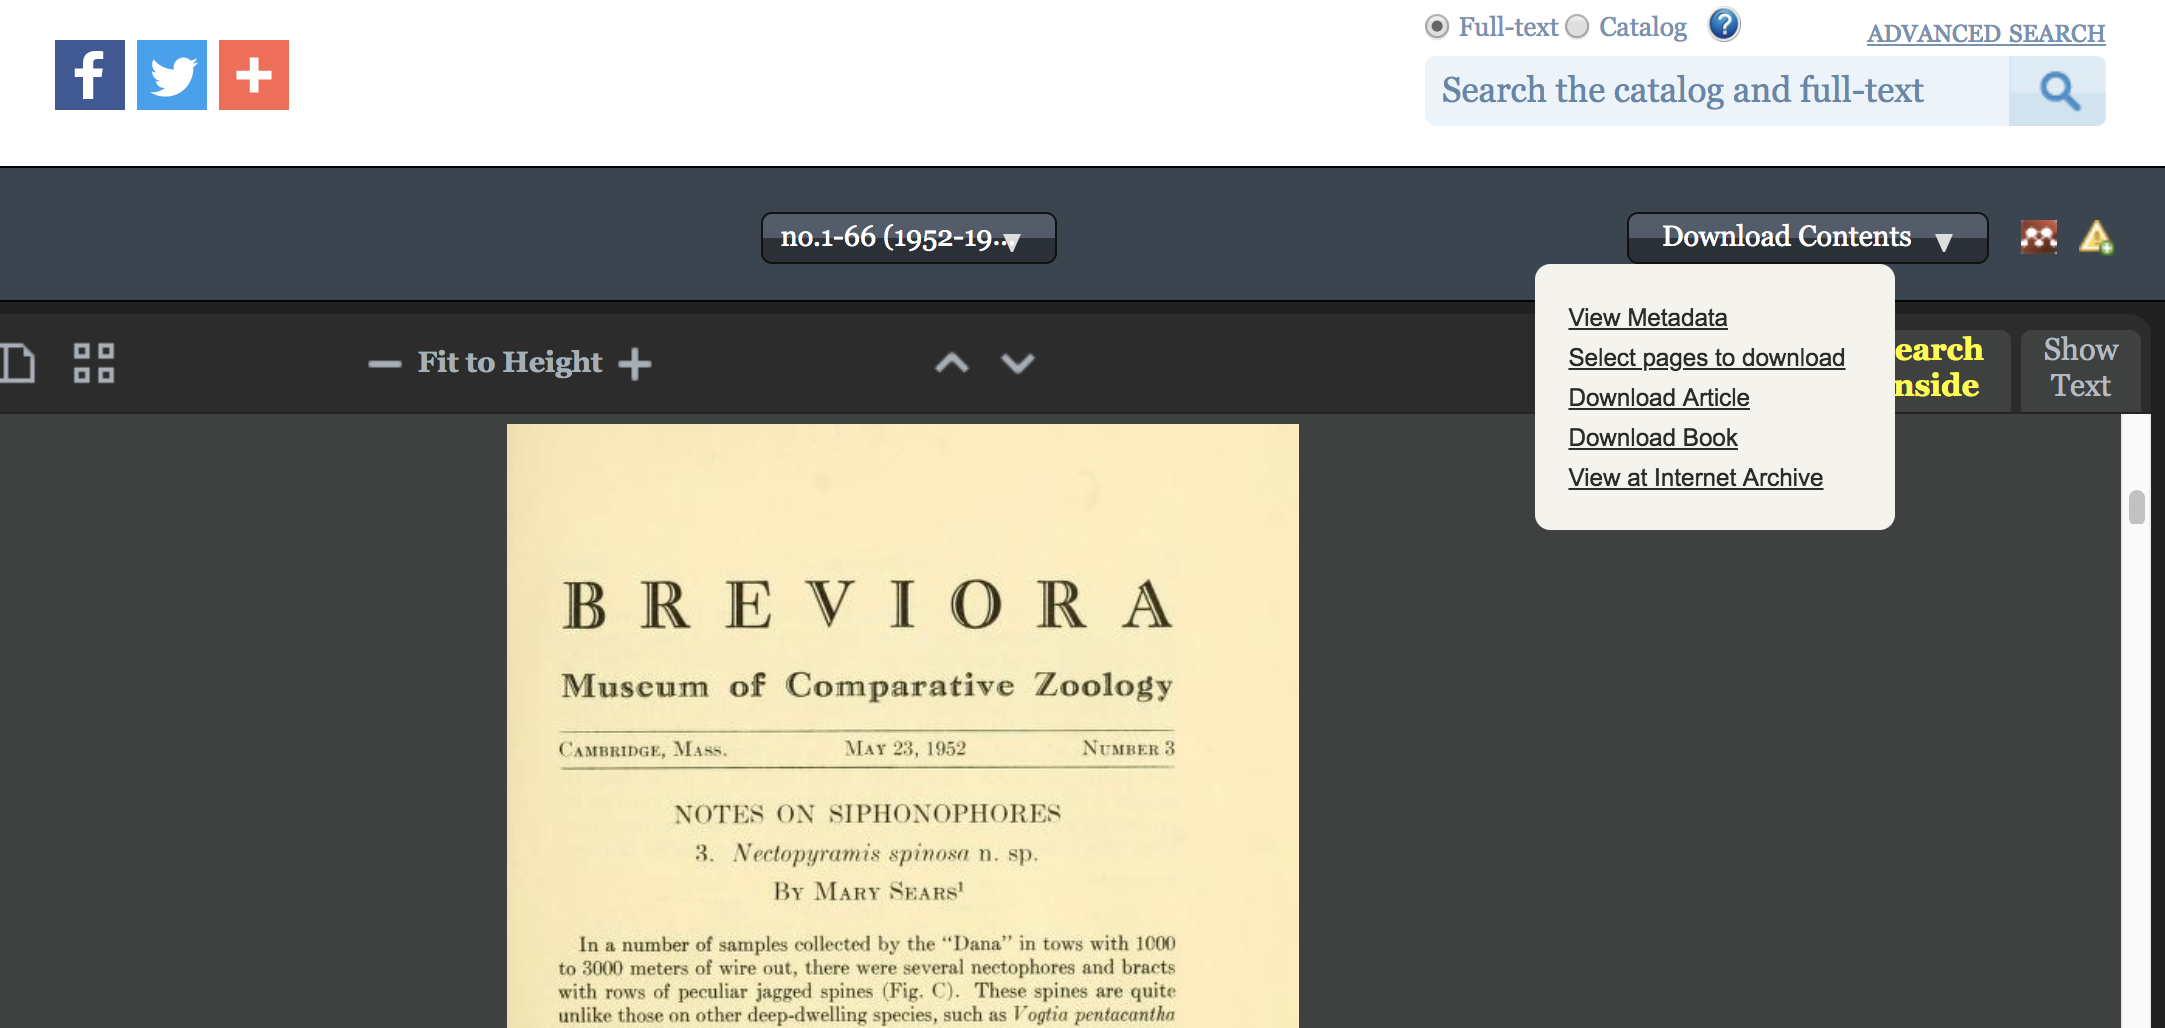 Screenshot of the Biodiversity Heritage Library book viewer showing options in the download contents dropdown menu.